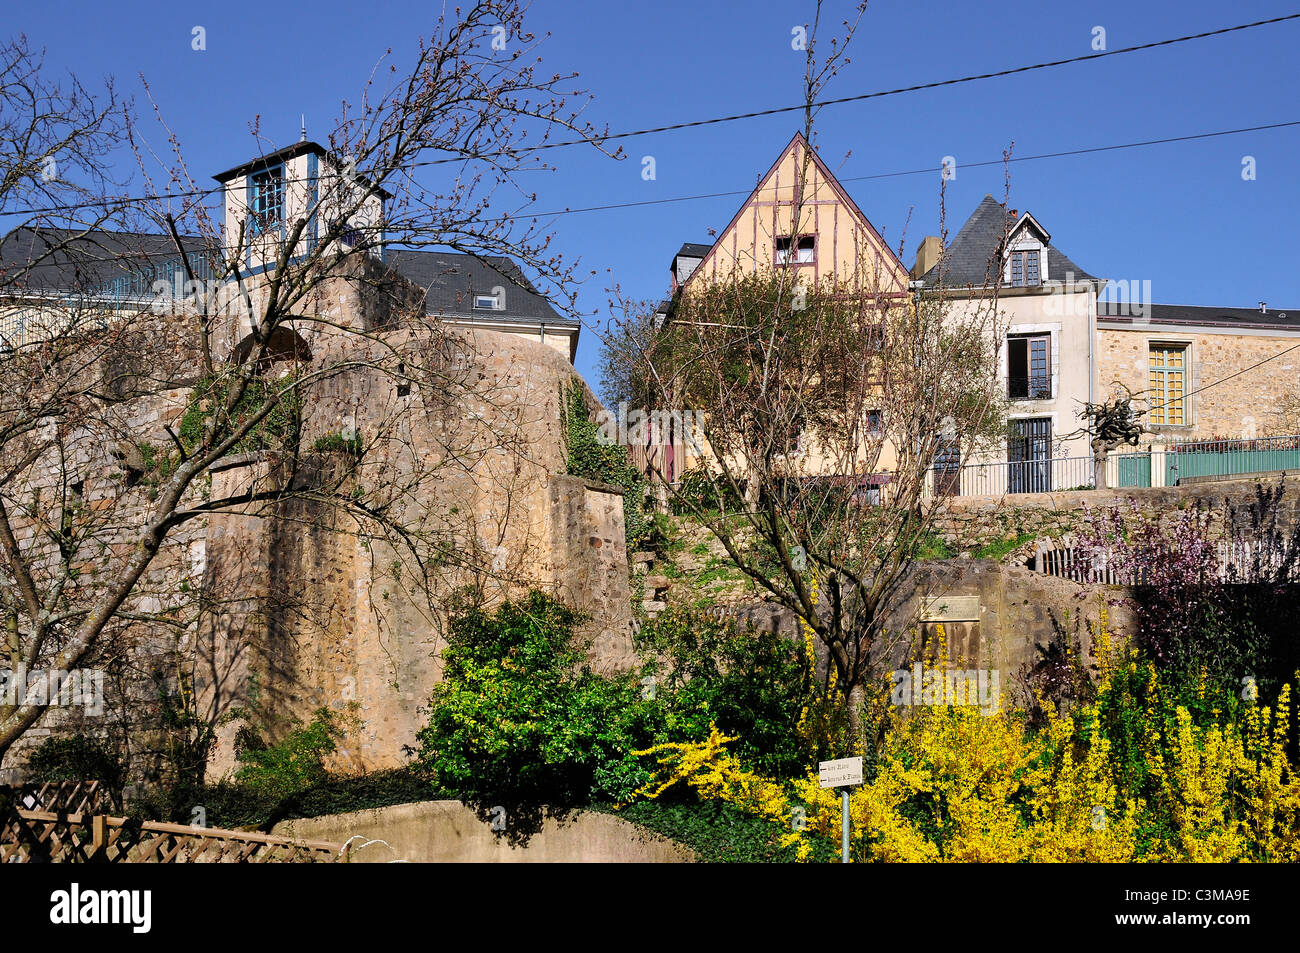 Typical Houses And The Big Old Stone Wall At Le Mans Of The Pays De La